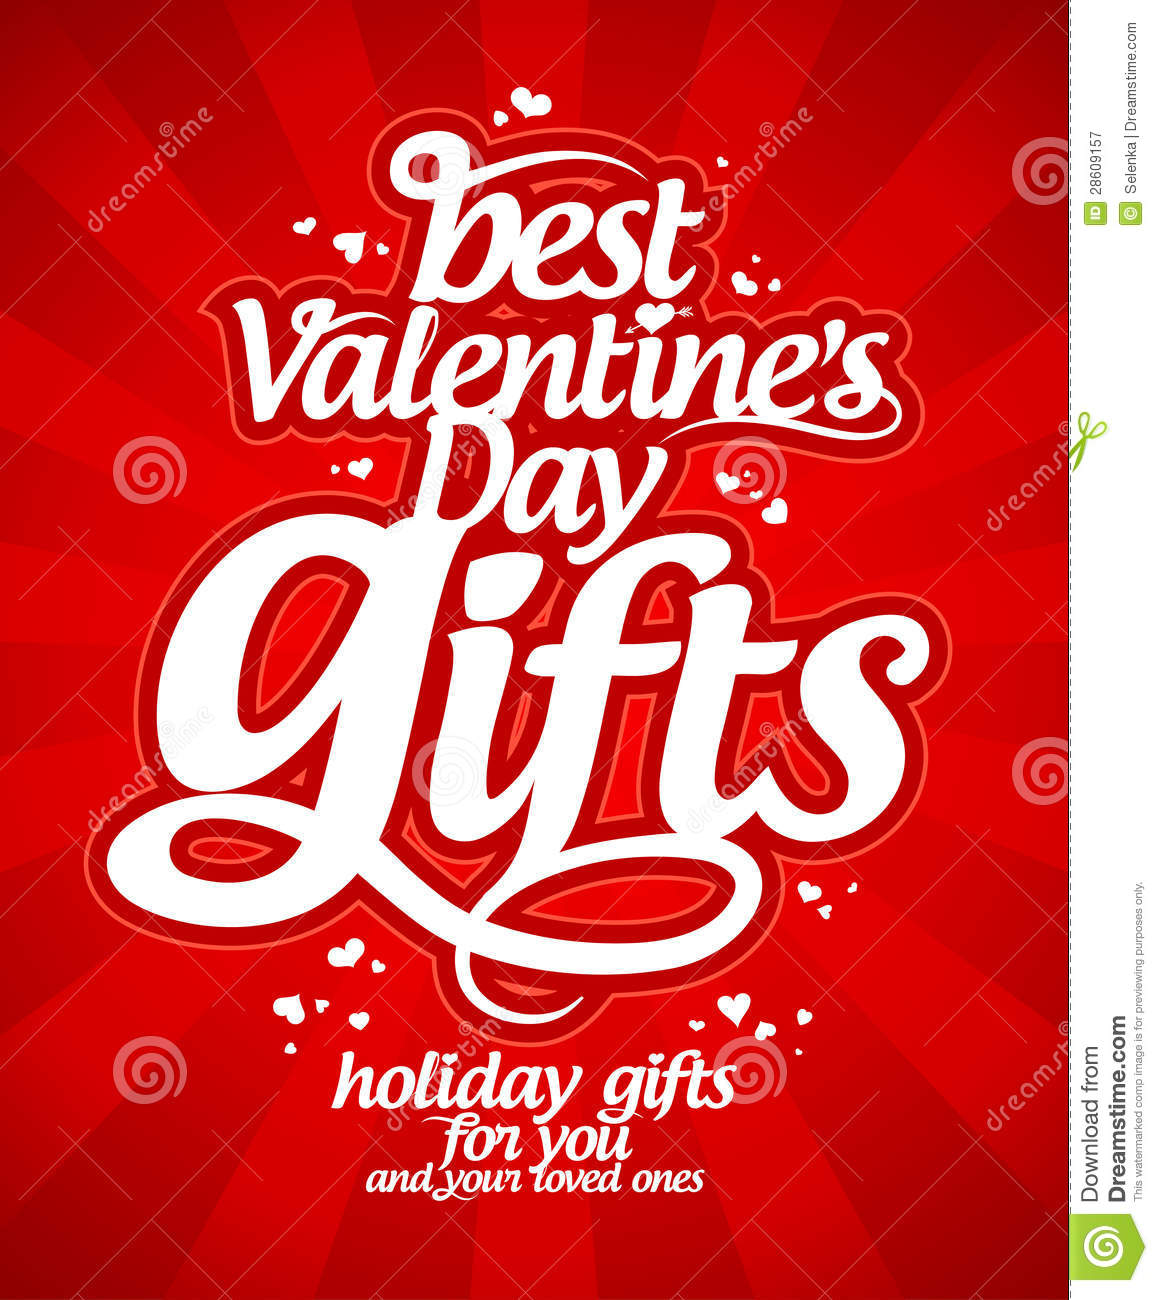 Best valentine s day gifts royalty free stock photography for Best gift in valentines